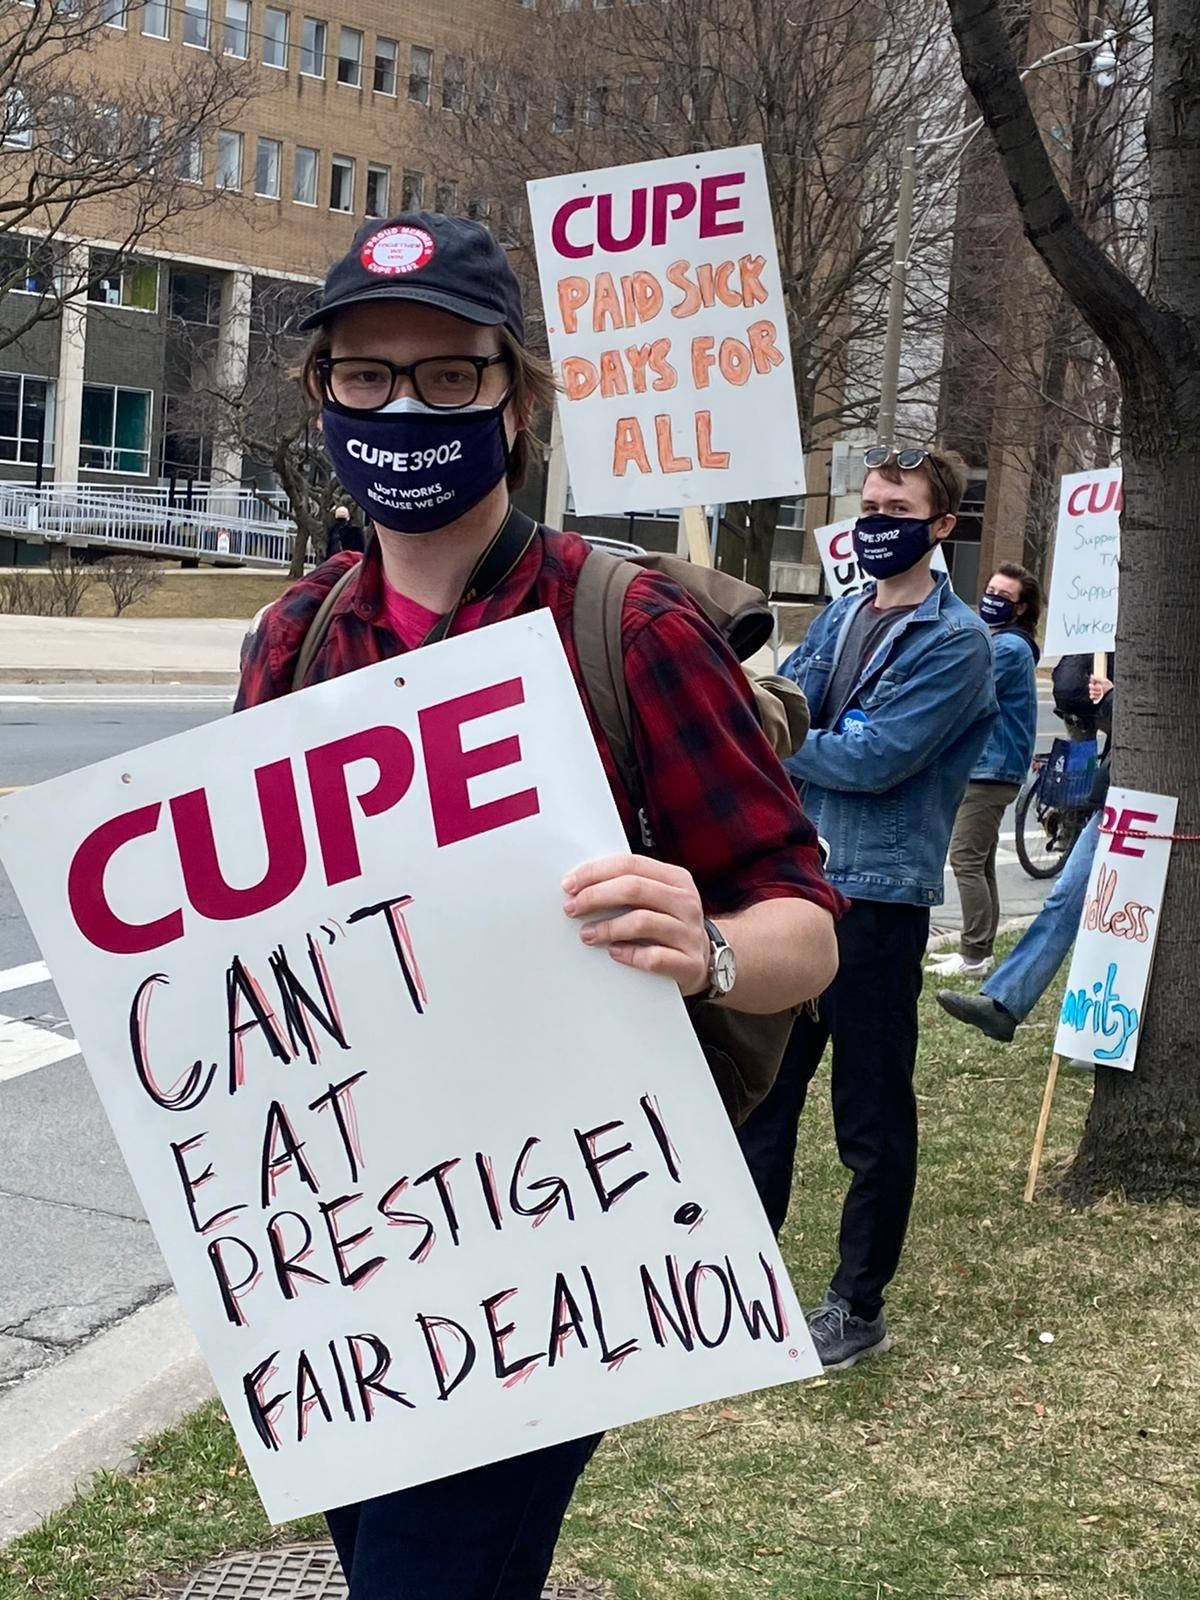 """Eriks Bredovskis, holding a strike sign that says """"CAN'T EAT PRESTIGE! FAIR DEAL NOW"""""""